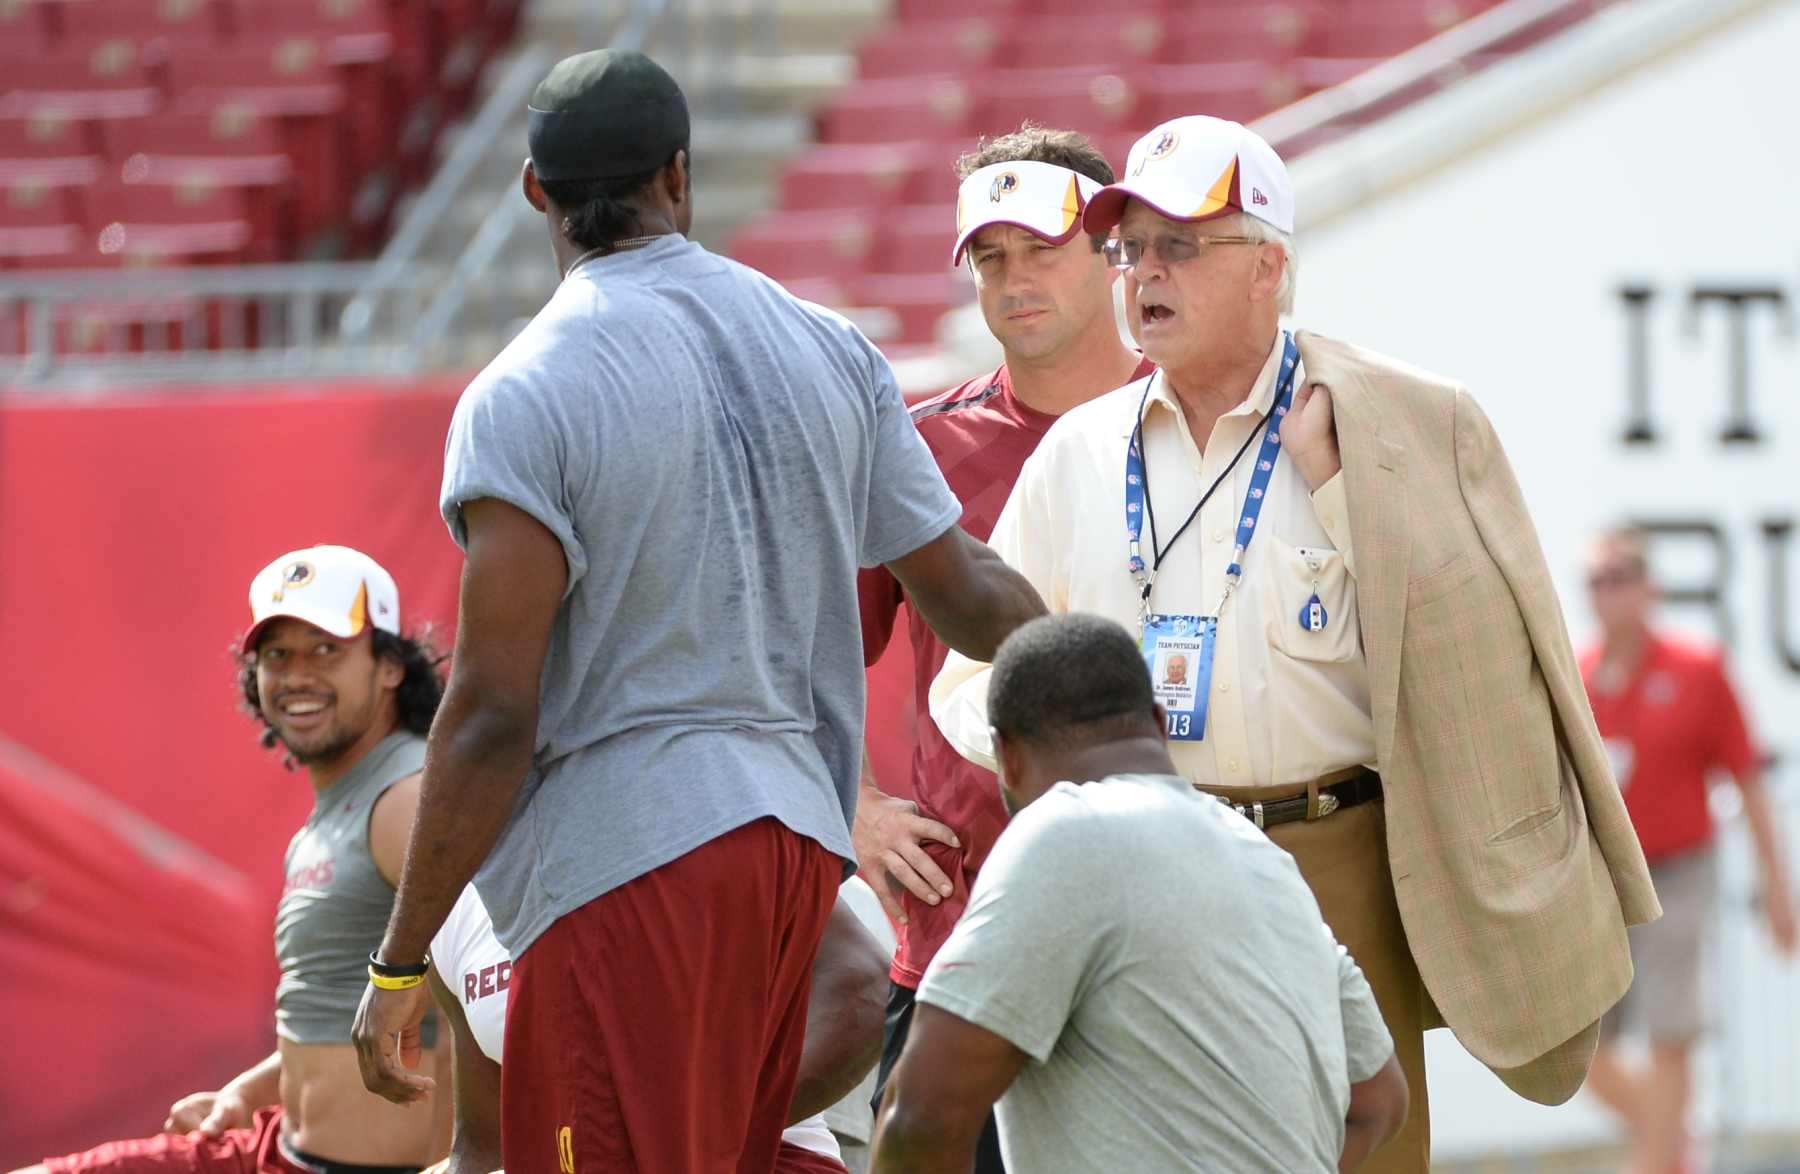 TAMPA, FL  August  29:  Dr. James Andrews talks with Washington Redskins quarterback Robert Griffin III (10) prior to action against the Tampa Bay Buccaneers on August 29,  2013 in Tampa, FL   (Photo by Jonathan Newton / The Washington Post via Getty Images)